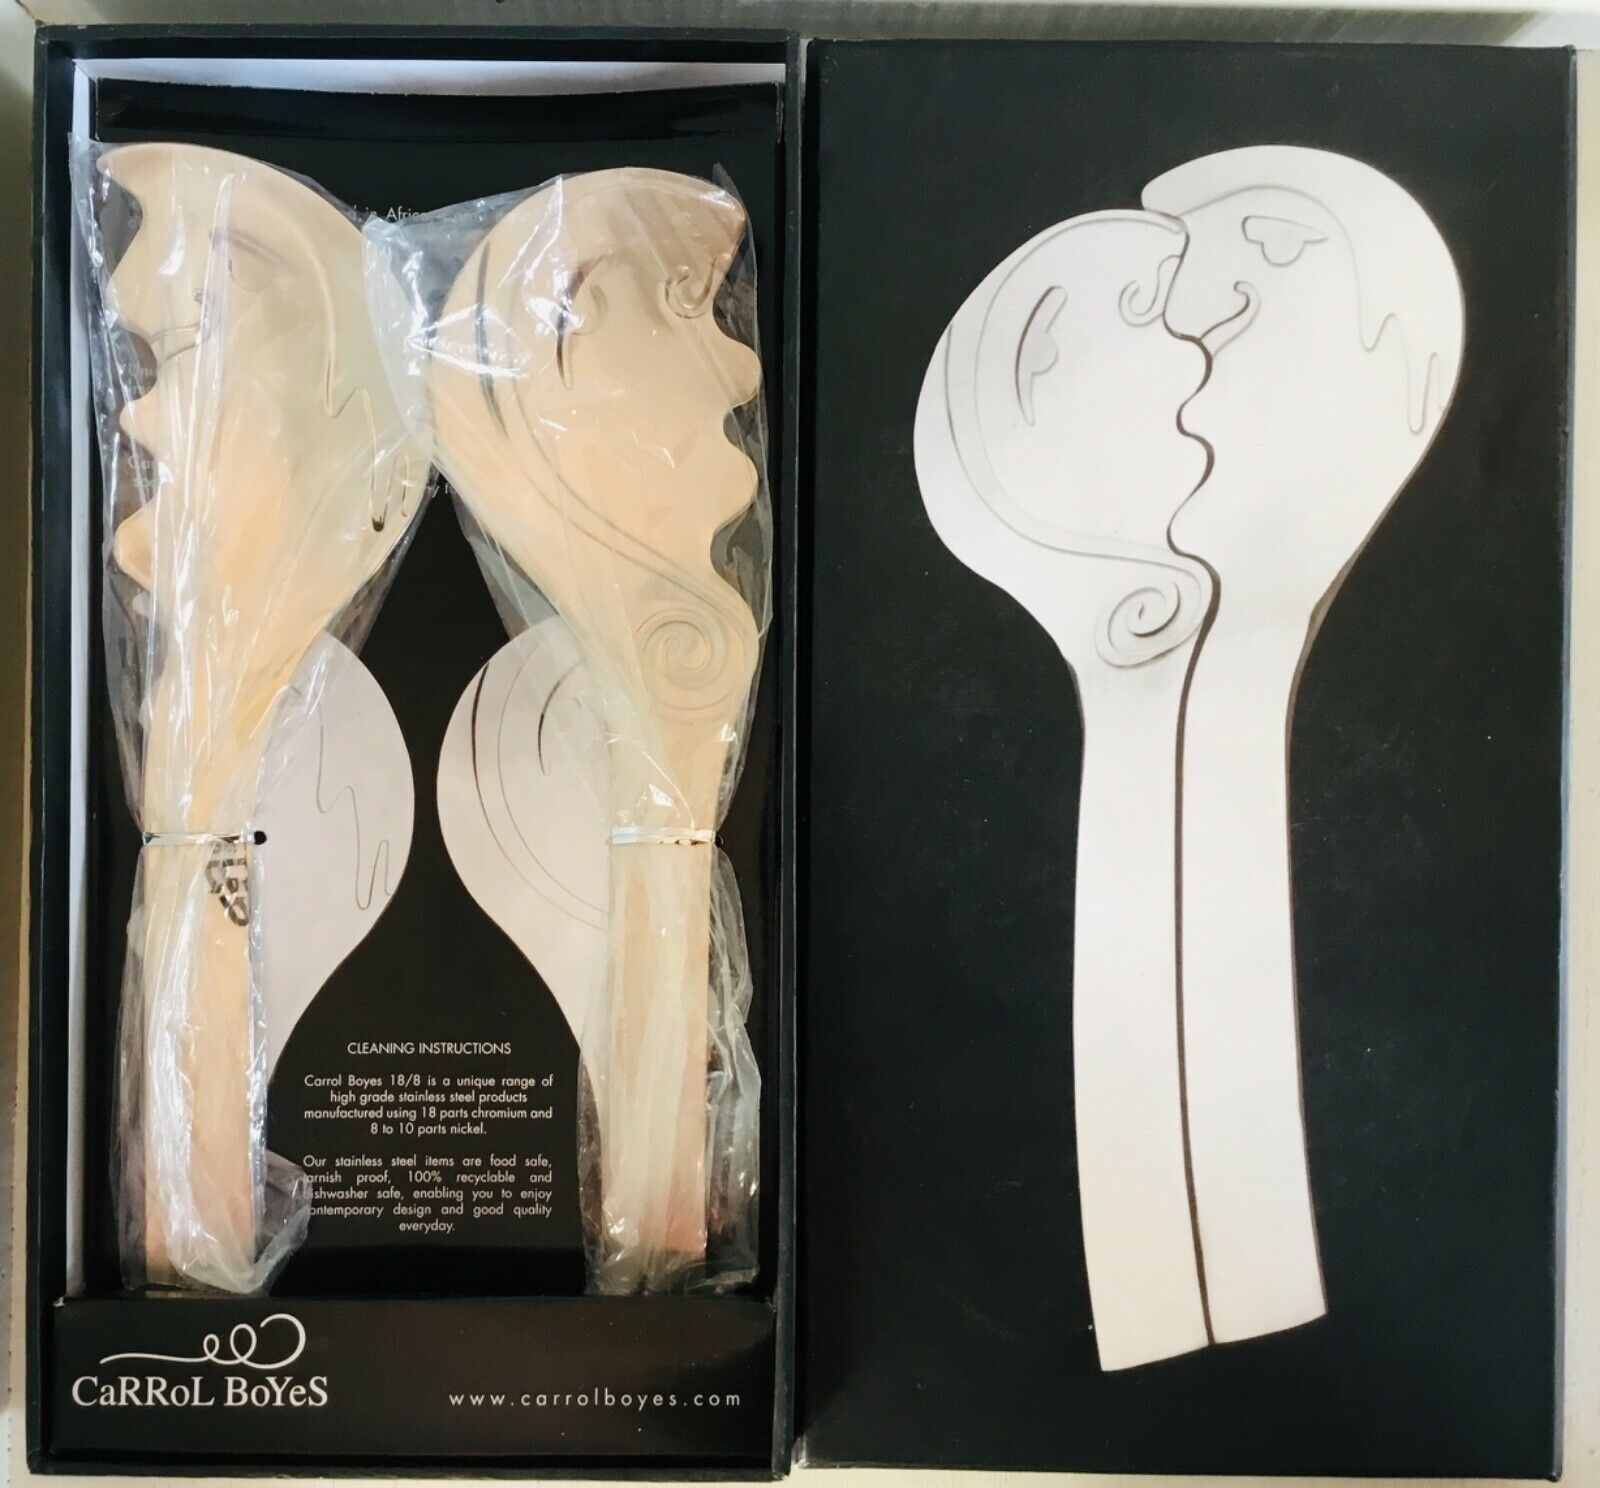 Carrol BOYES South African top Design Salad Servers KISS 18SS-KS NEW IN BOX